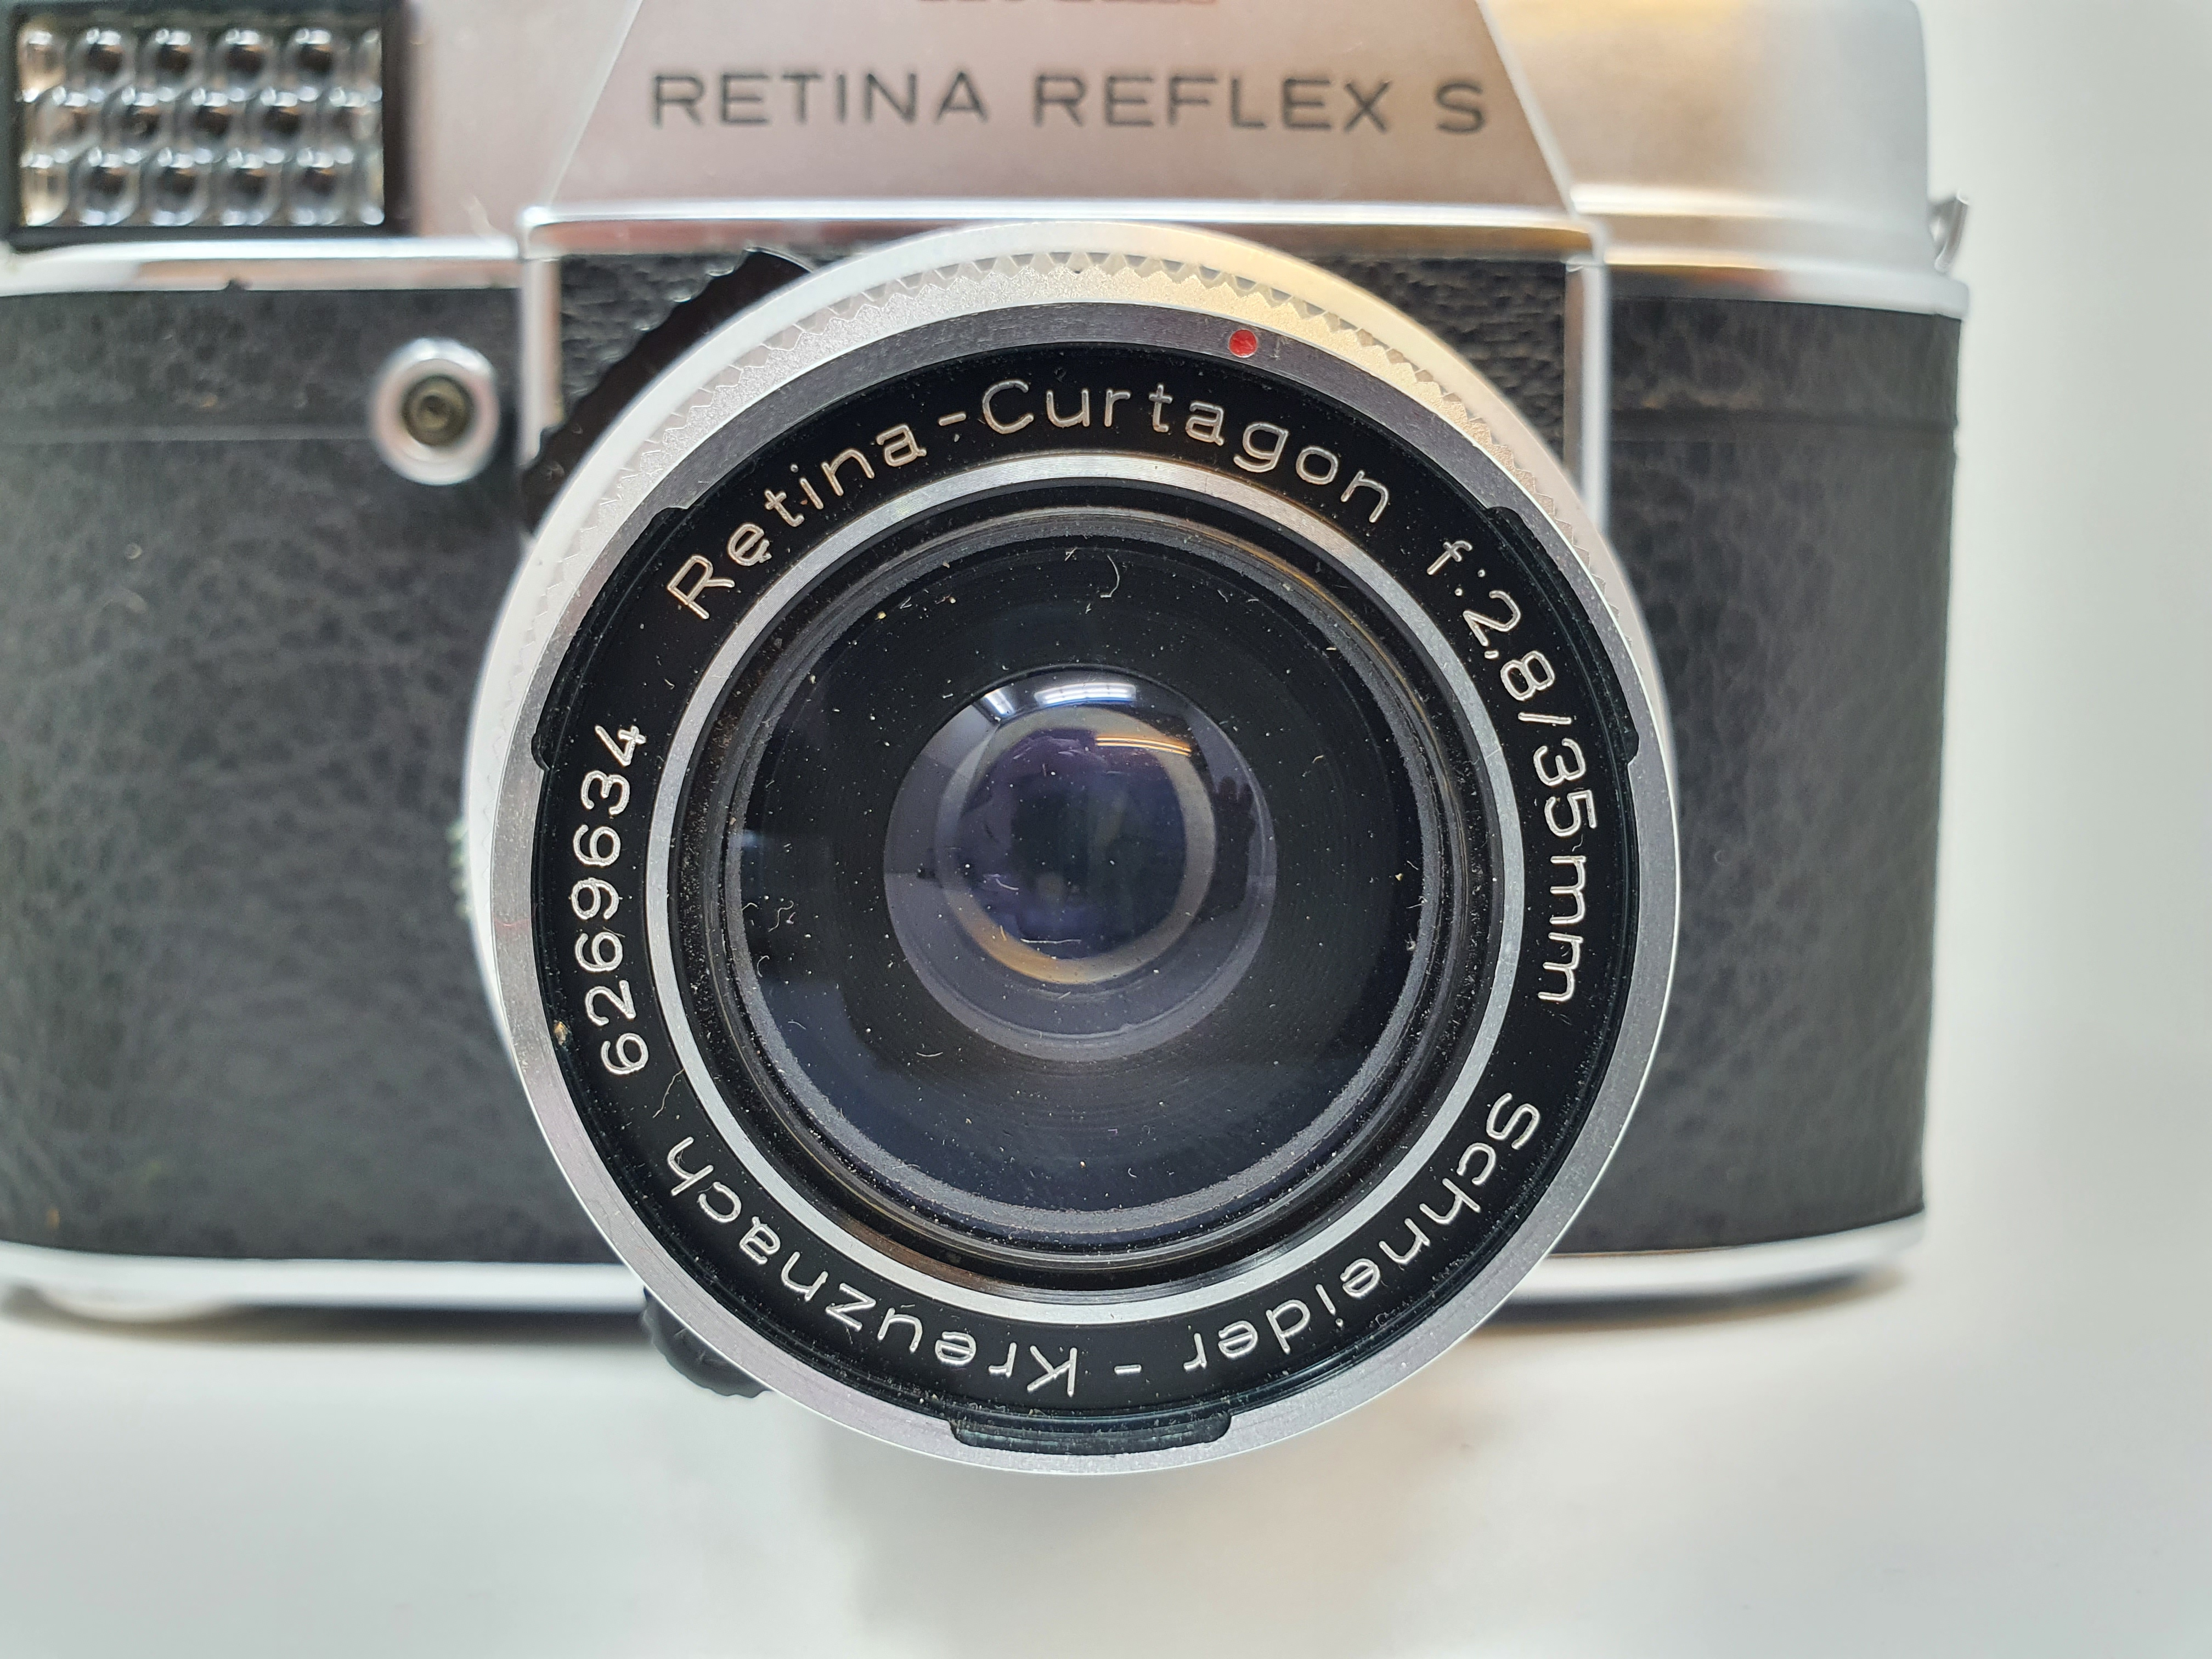 A Kodak Retina Reflex S, serial number 80495, with two extra lenses, in leather carrying case - Image 2 of 6